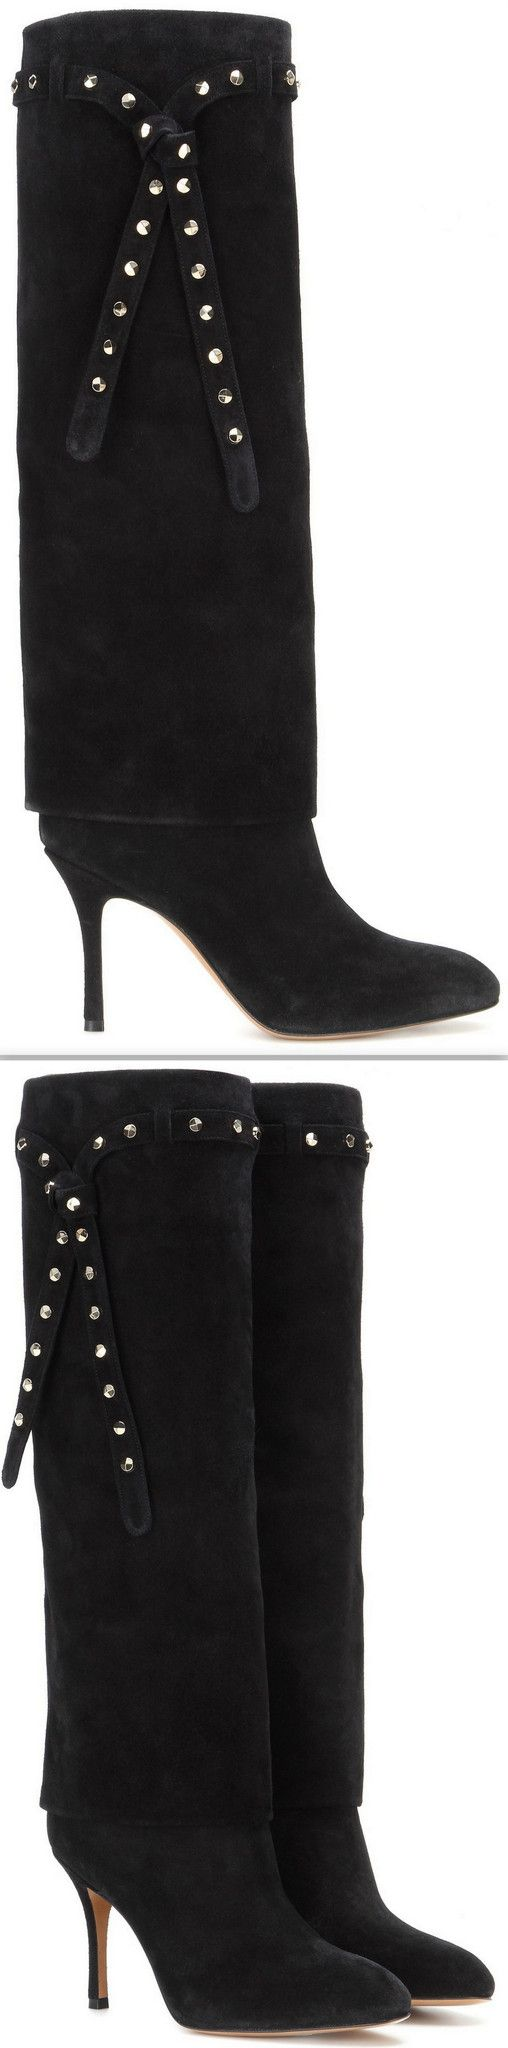 25 best ideas about suede knee high boots on